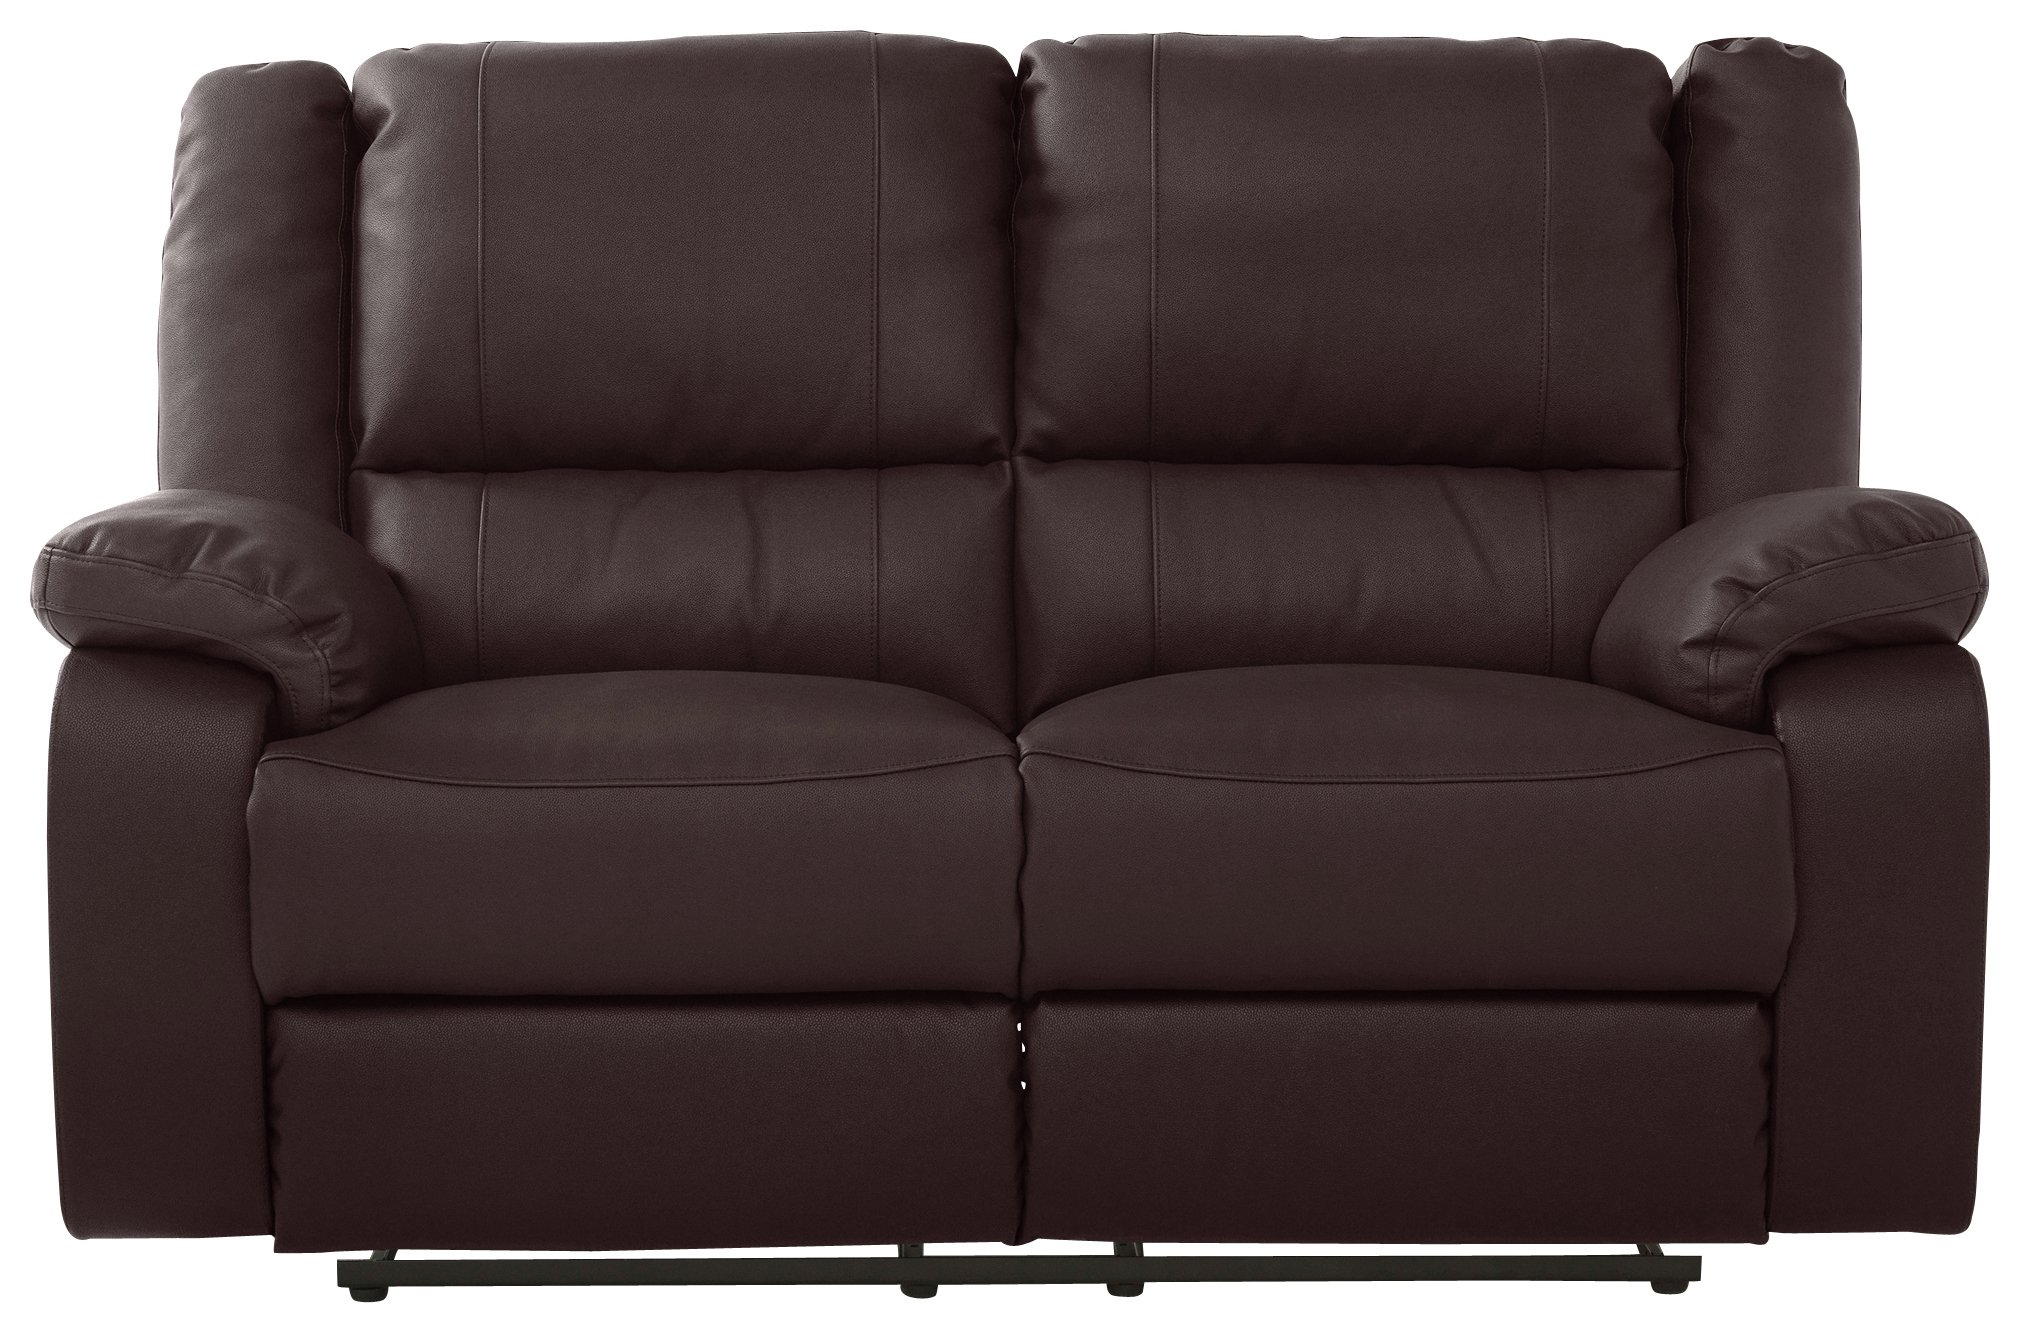 Argos Home - Bruno 2 Seater Manual Recliner Sofa - Chocolate